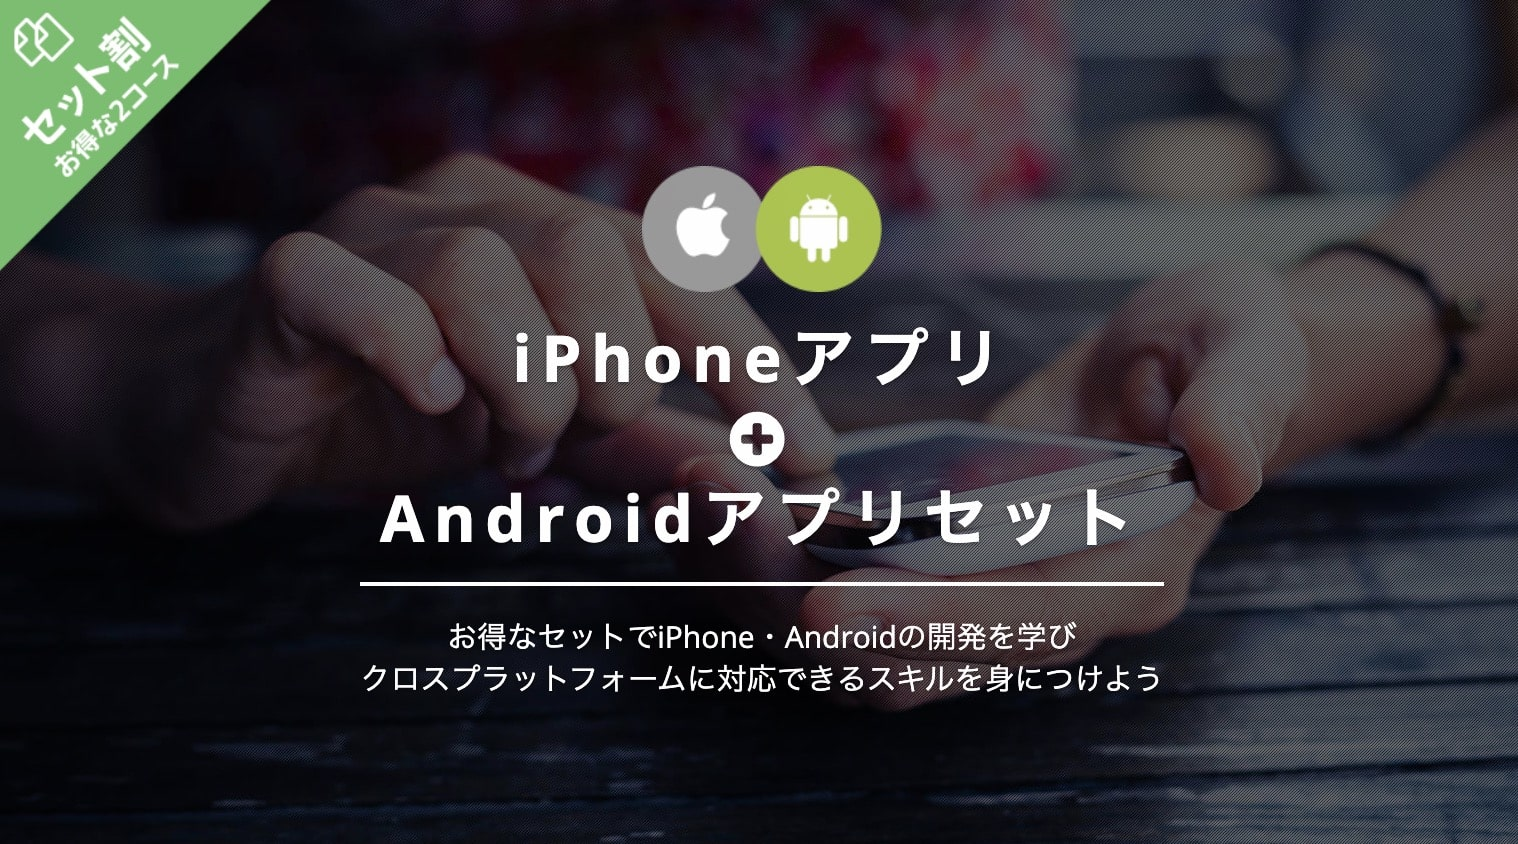 iPhoneアプリ+Androidアプリセットの料金|TechAcademy(テックアカデミー)2セット